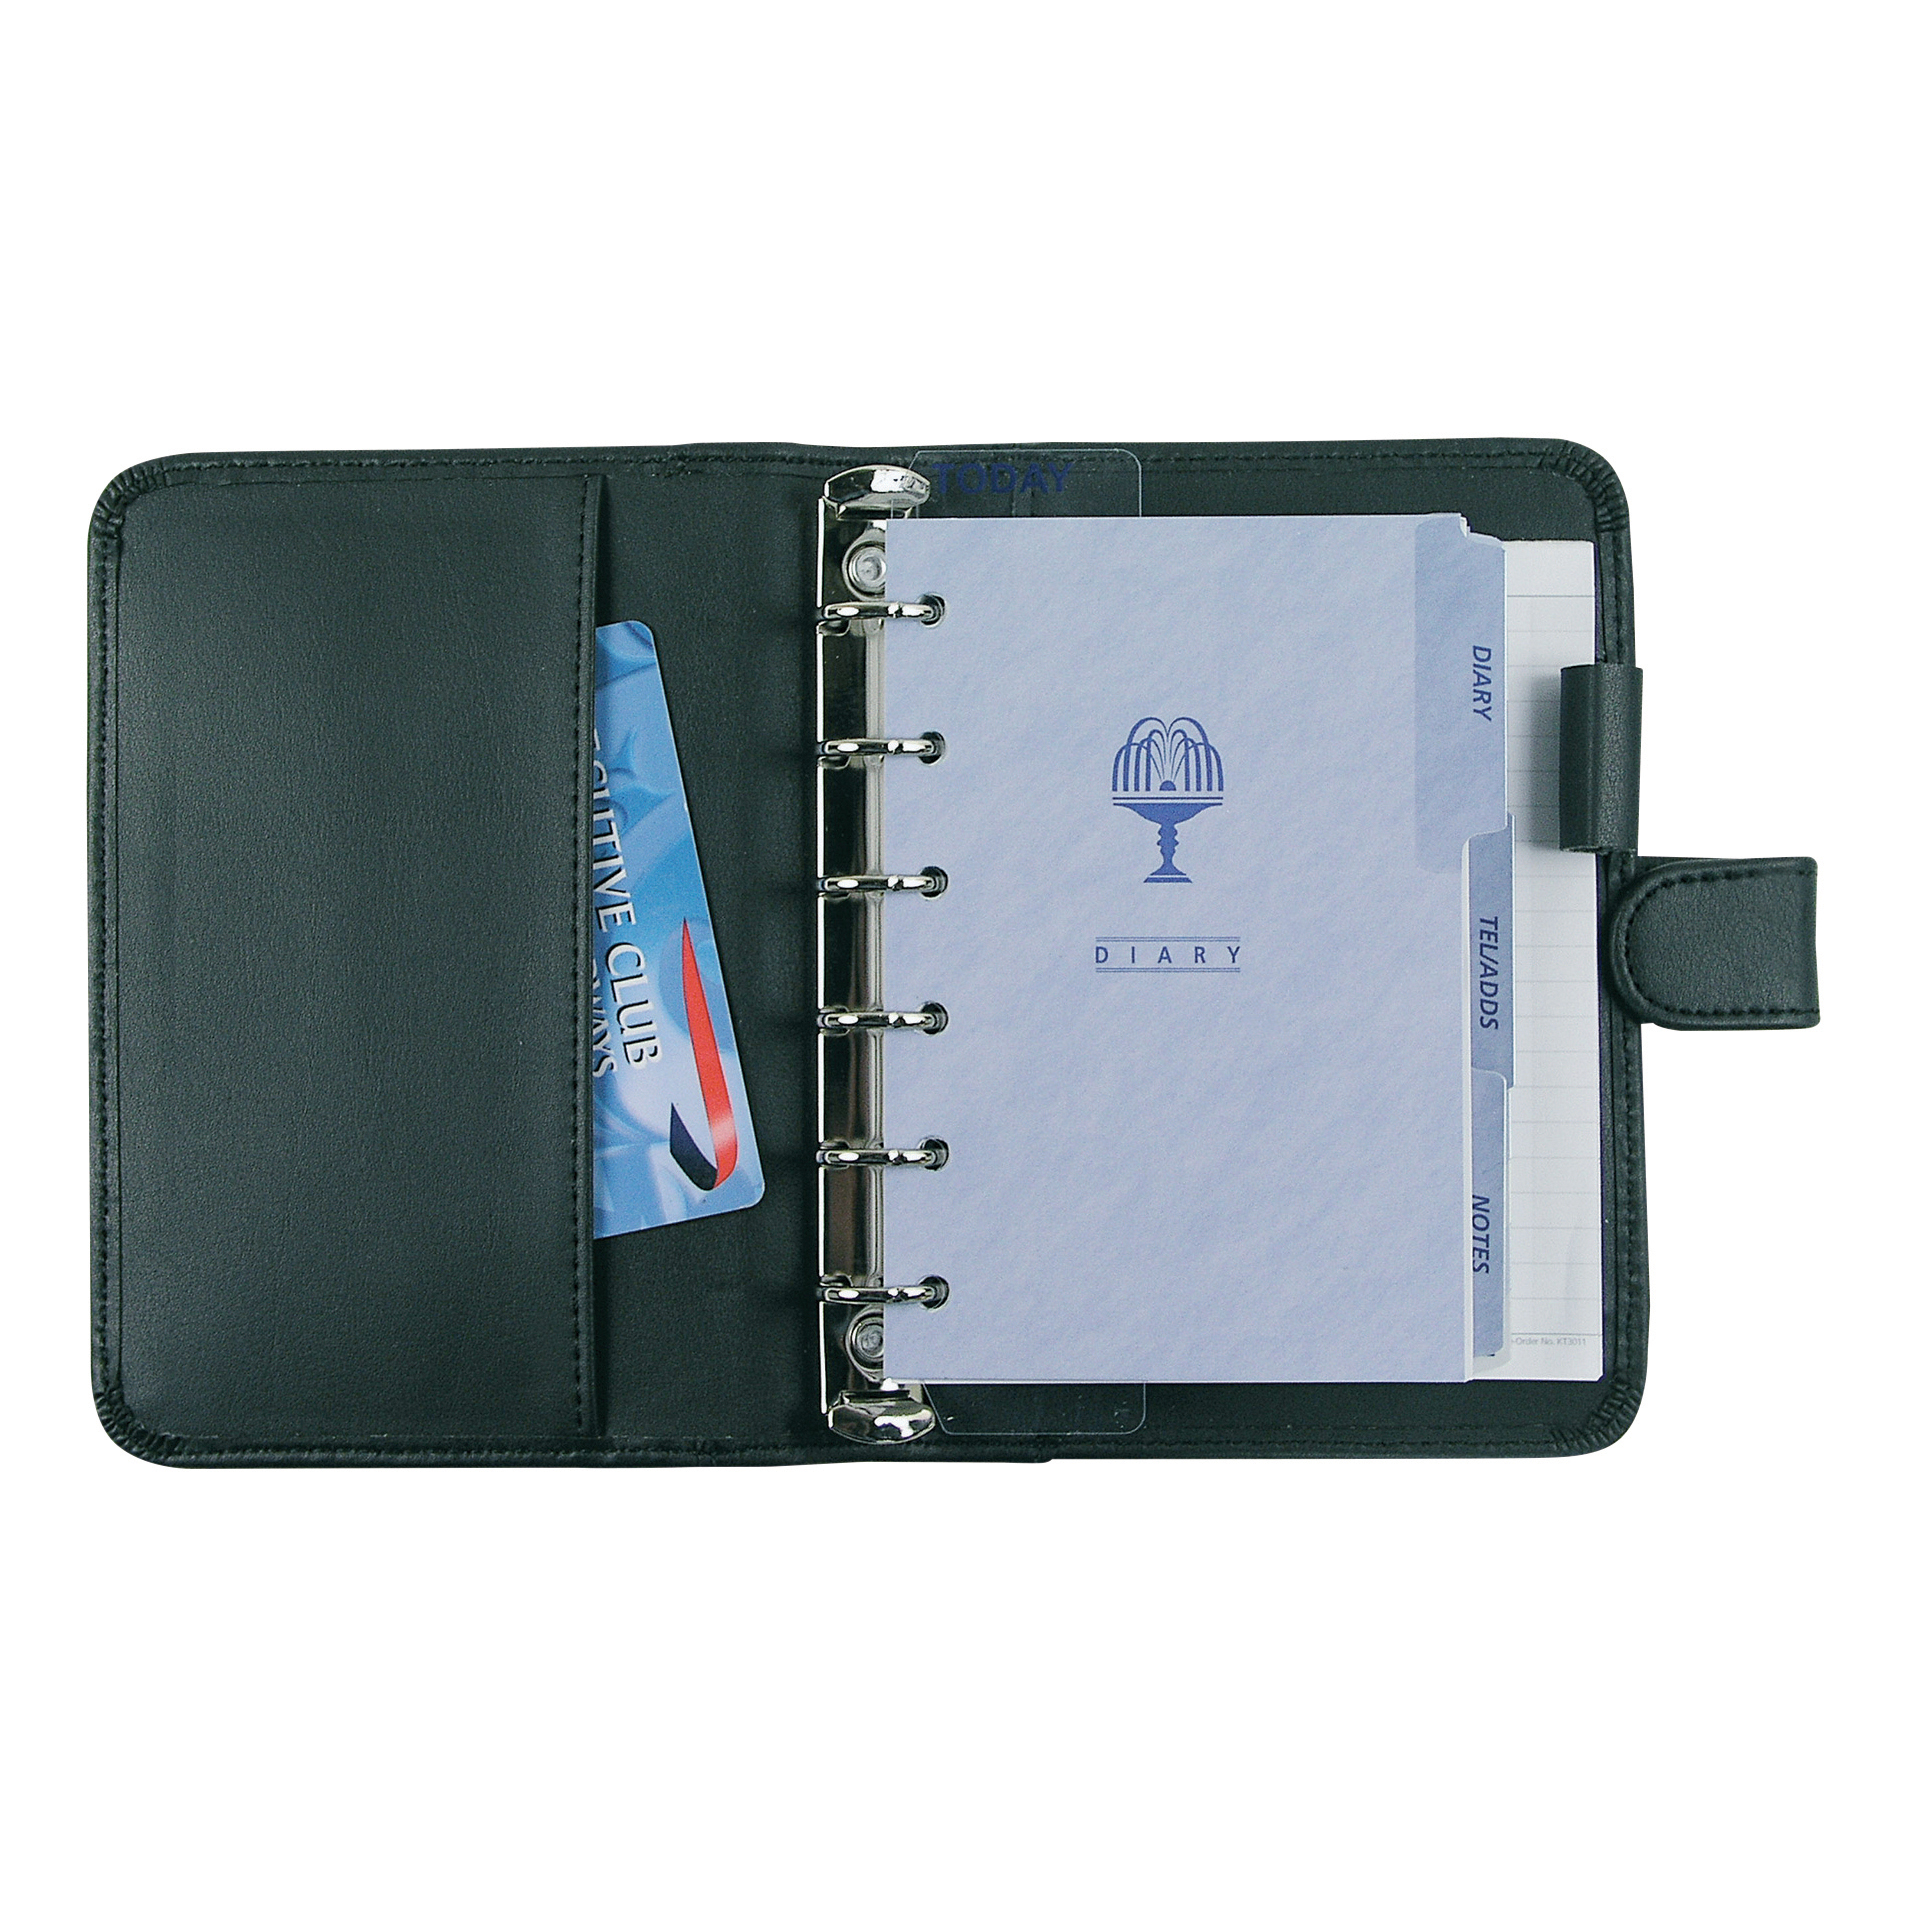 Collins Chatsworth Pocket Organiser Padded Faux Leather With Diary Insert 120x81mm Black Ref KT2999